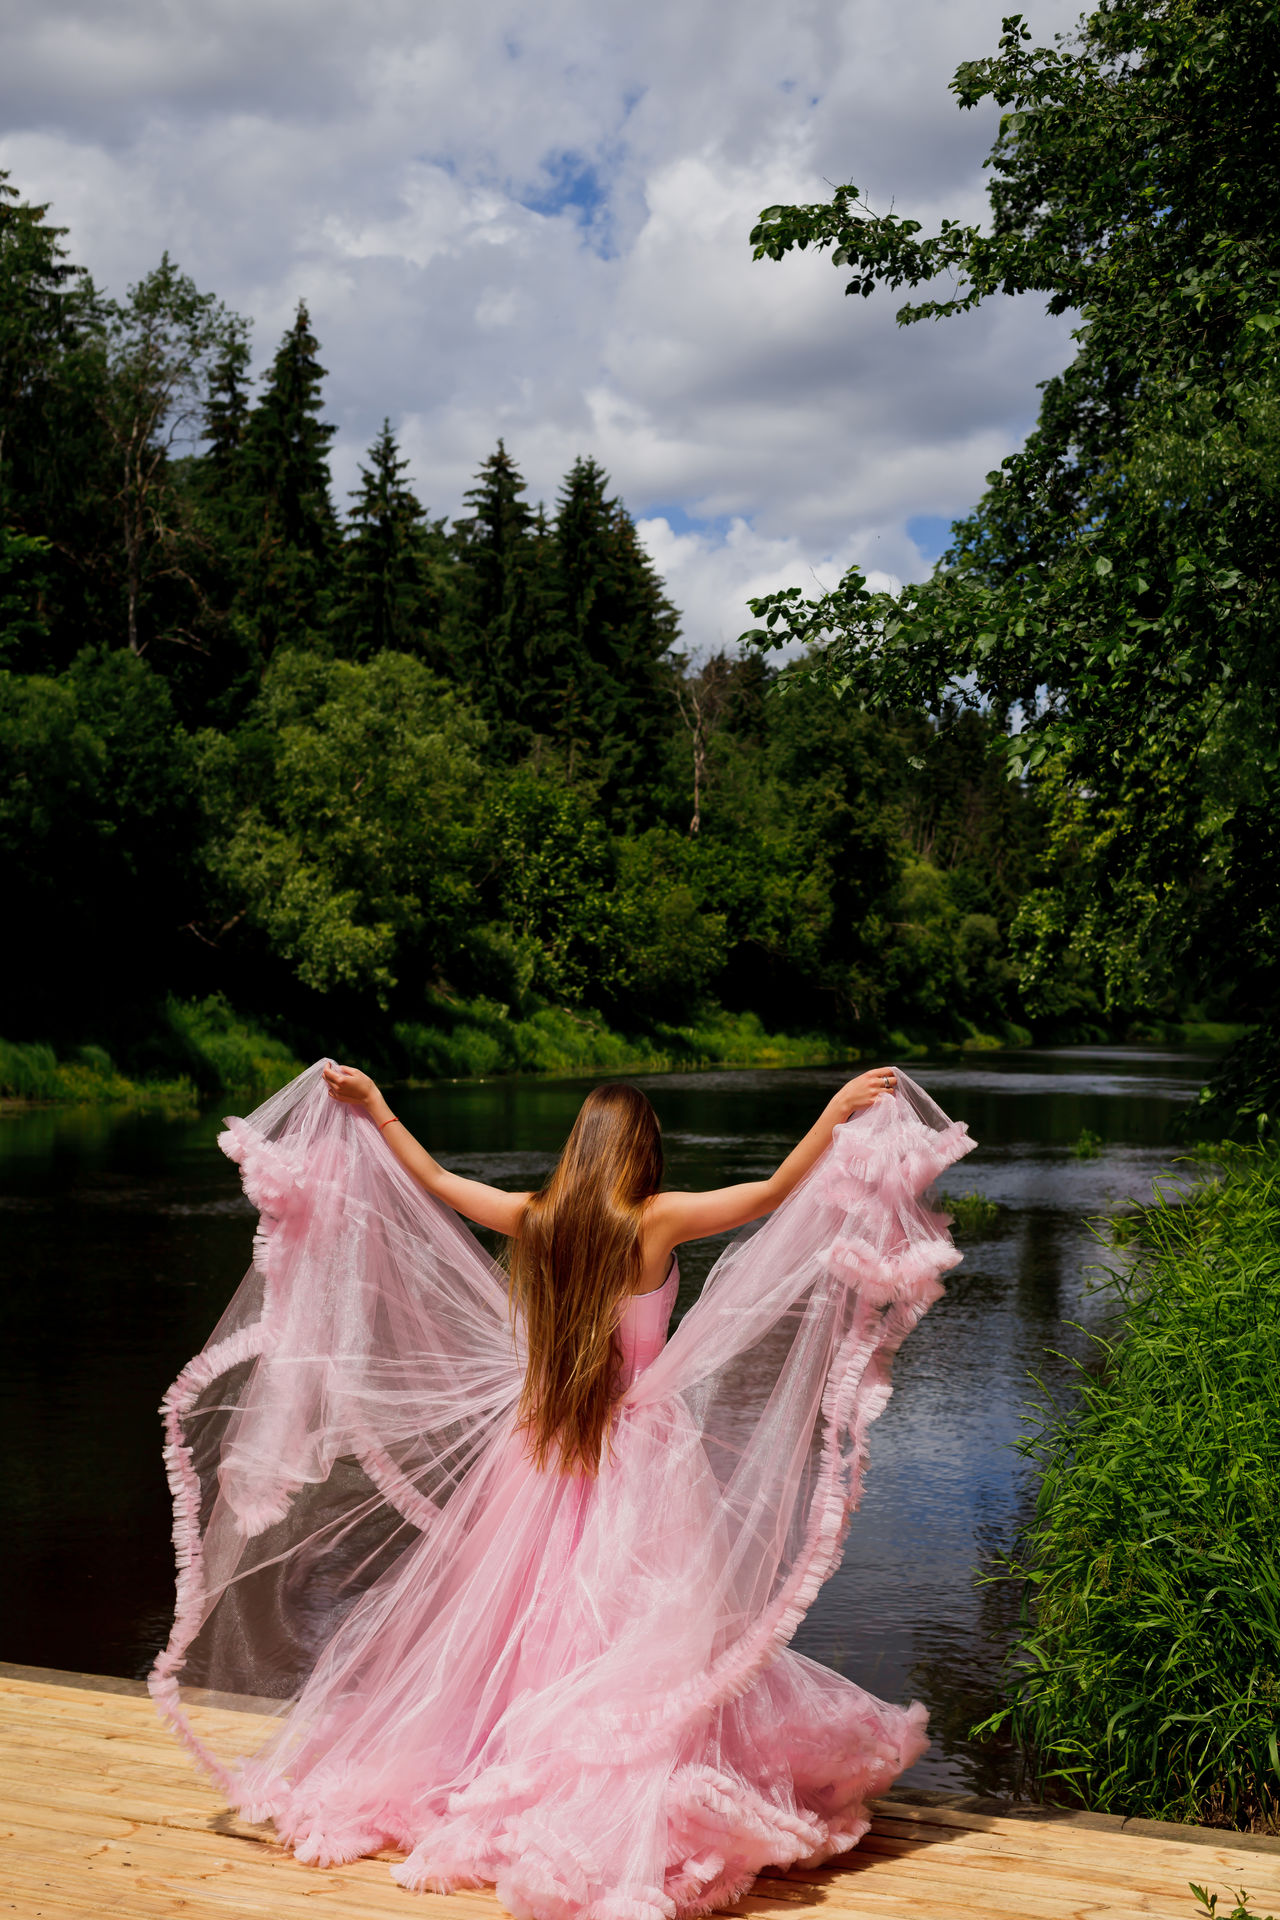 Dress Dress To Impress Flying Green In Motion Lake Motion Nature Nature_collection Pink River Riverside Summer Summer Views Summertime Sommergefühle EyeEm Selects